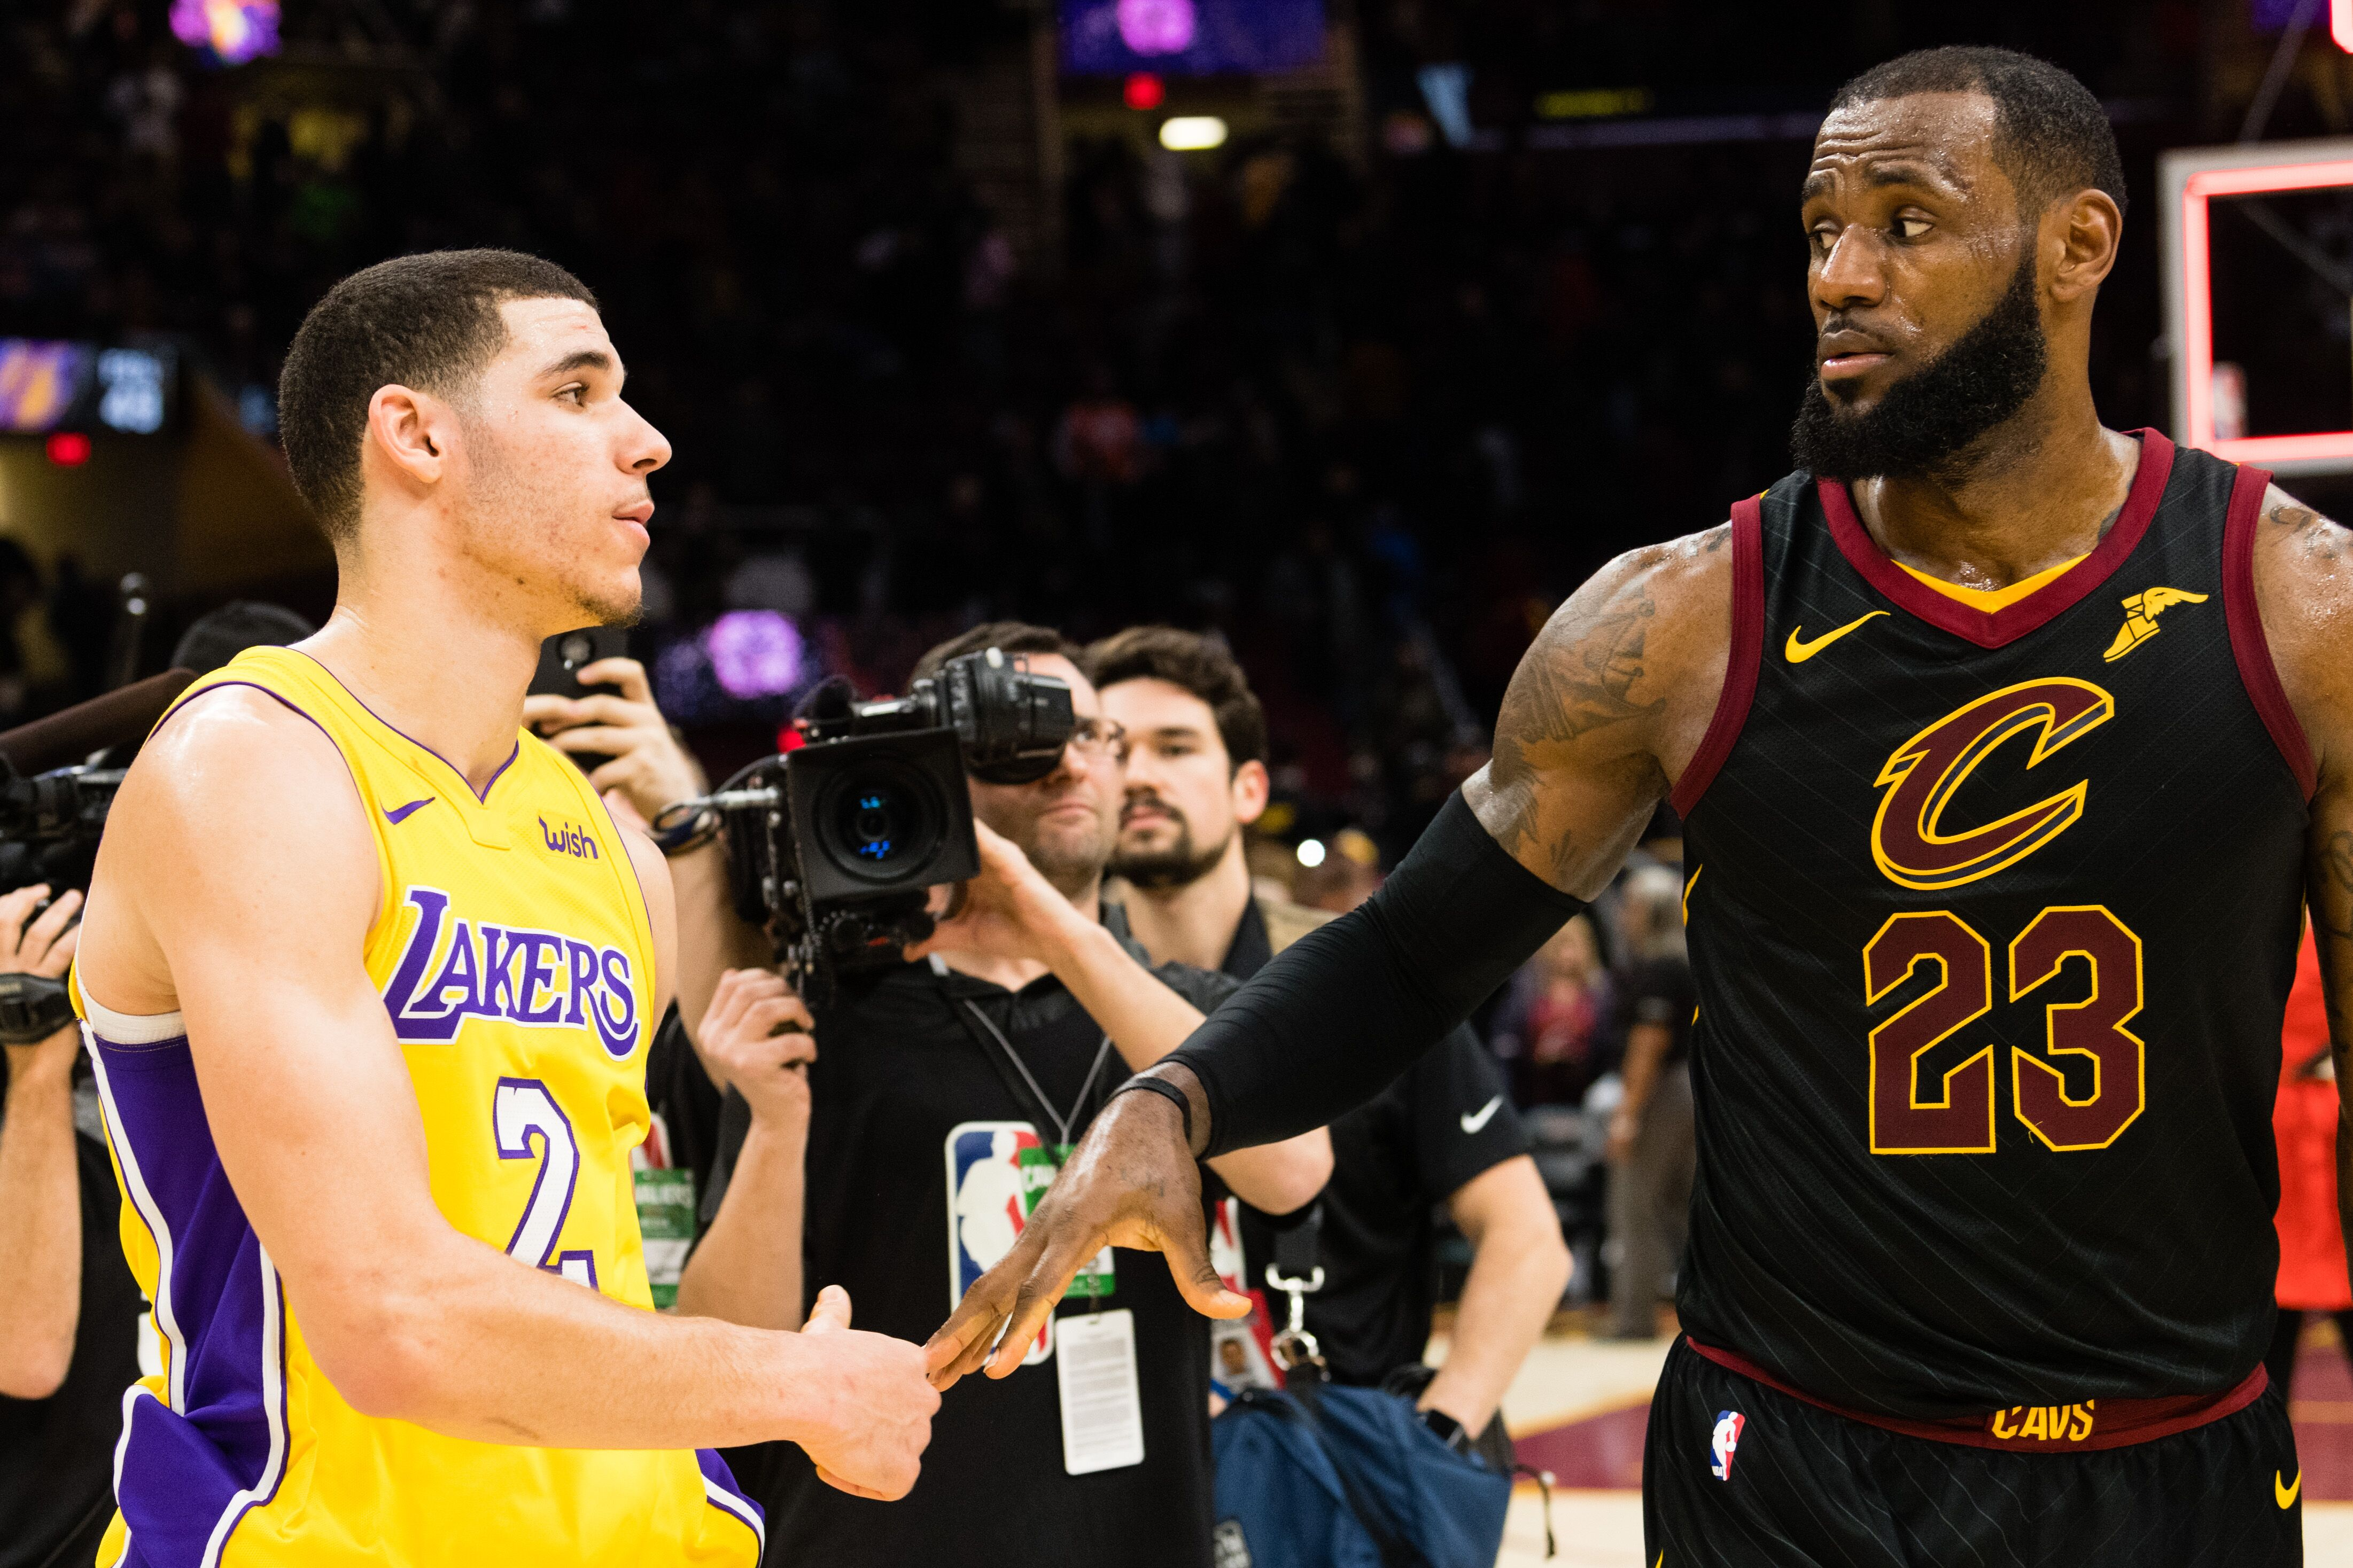 893206148-los-angeles-lakers-v-cleveland-cavaliers.jpg